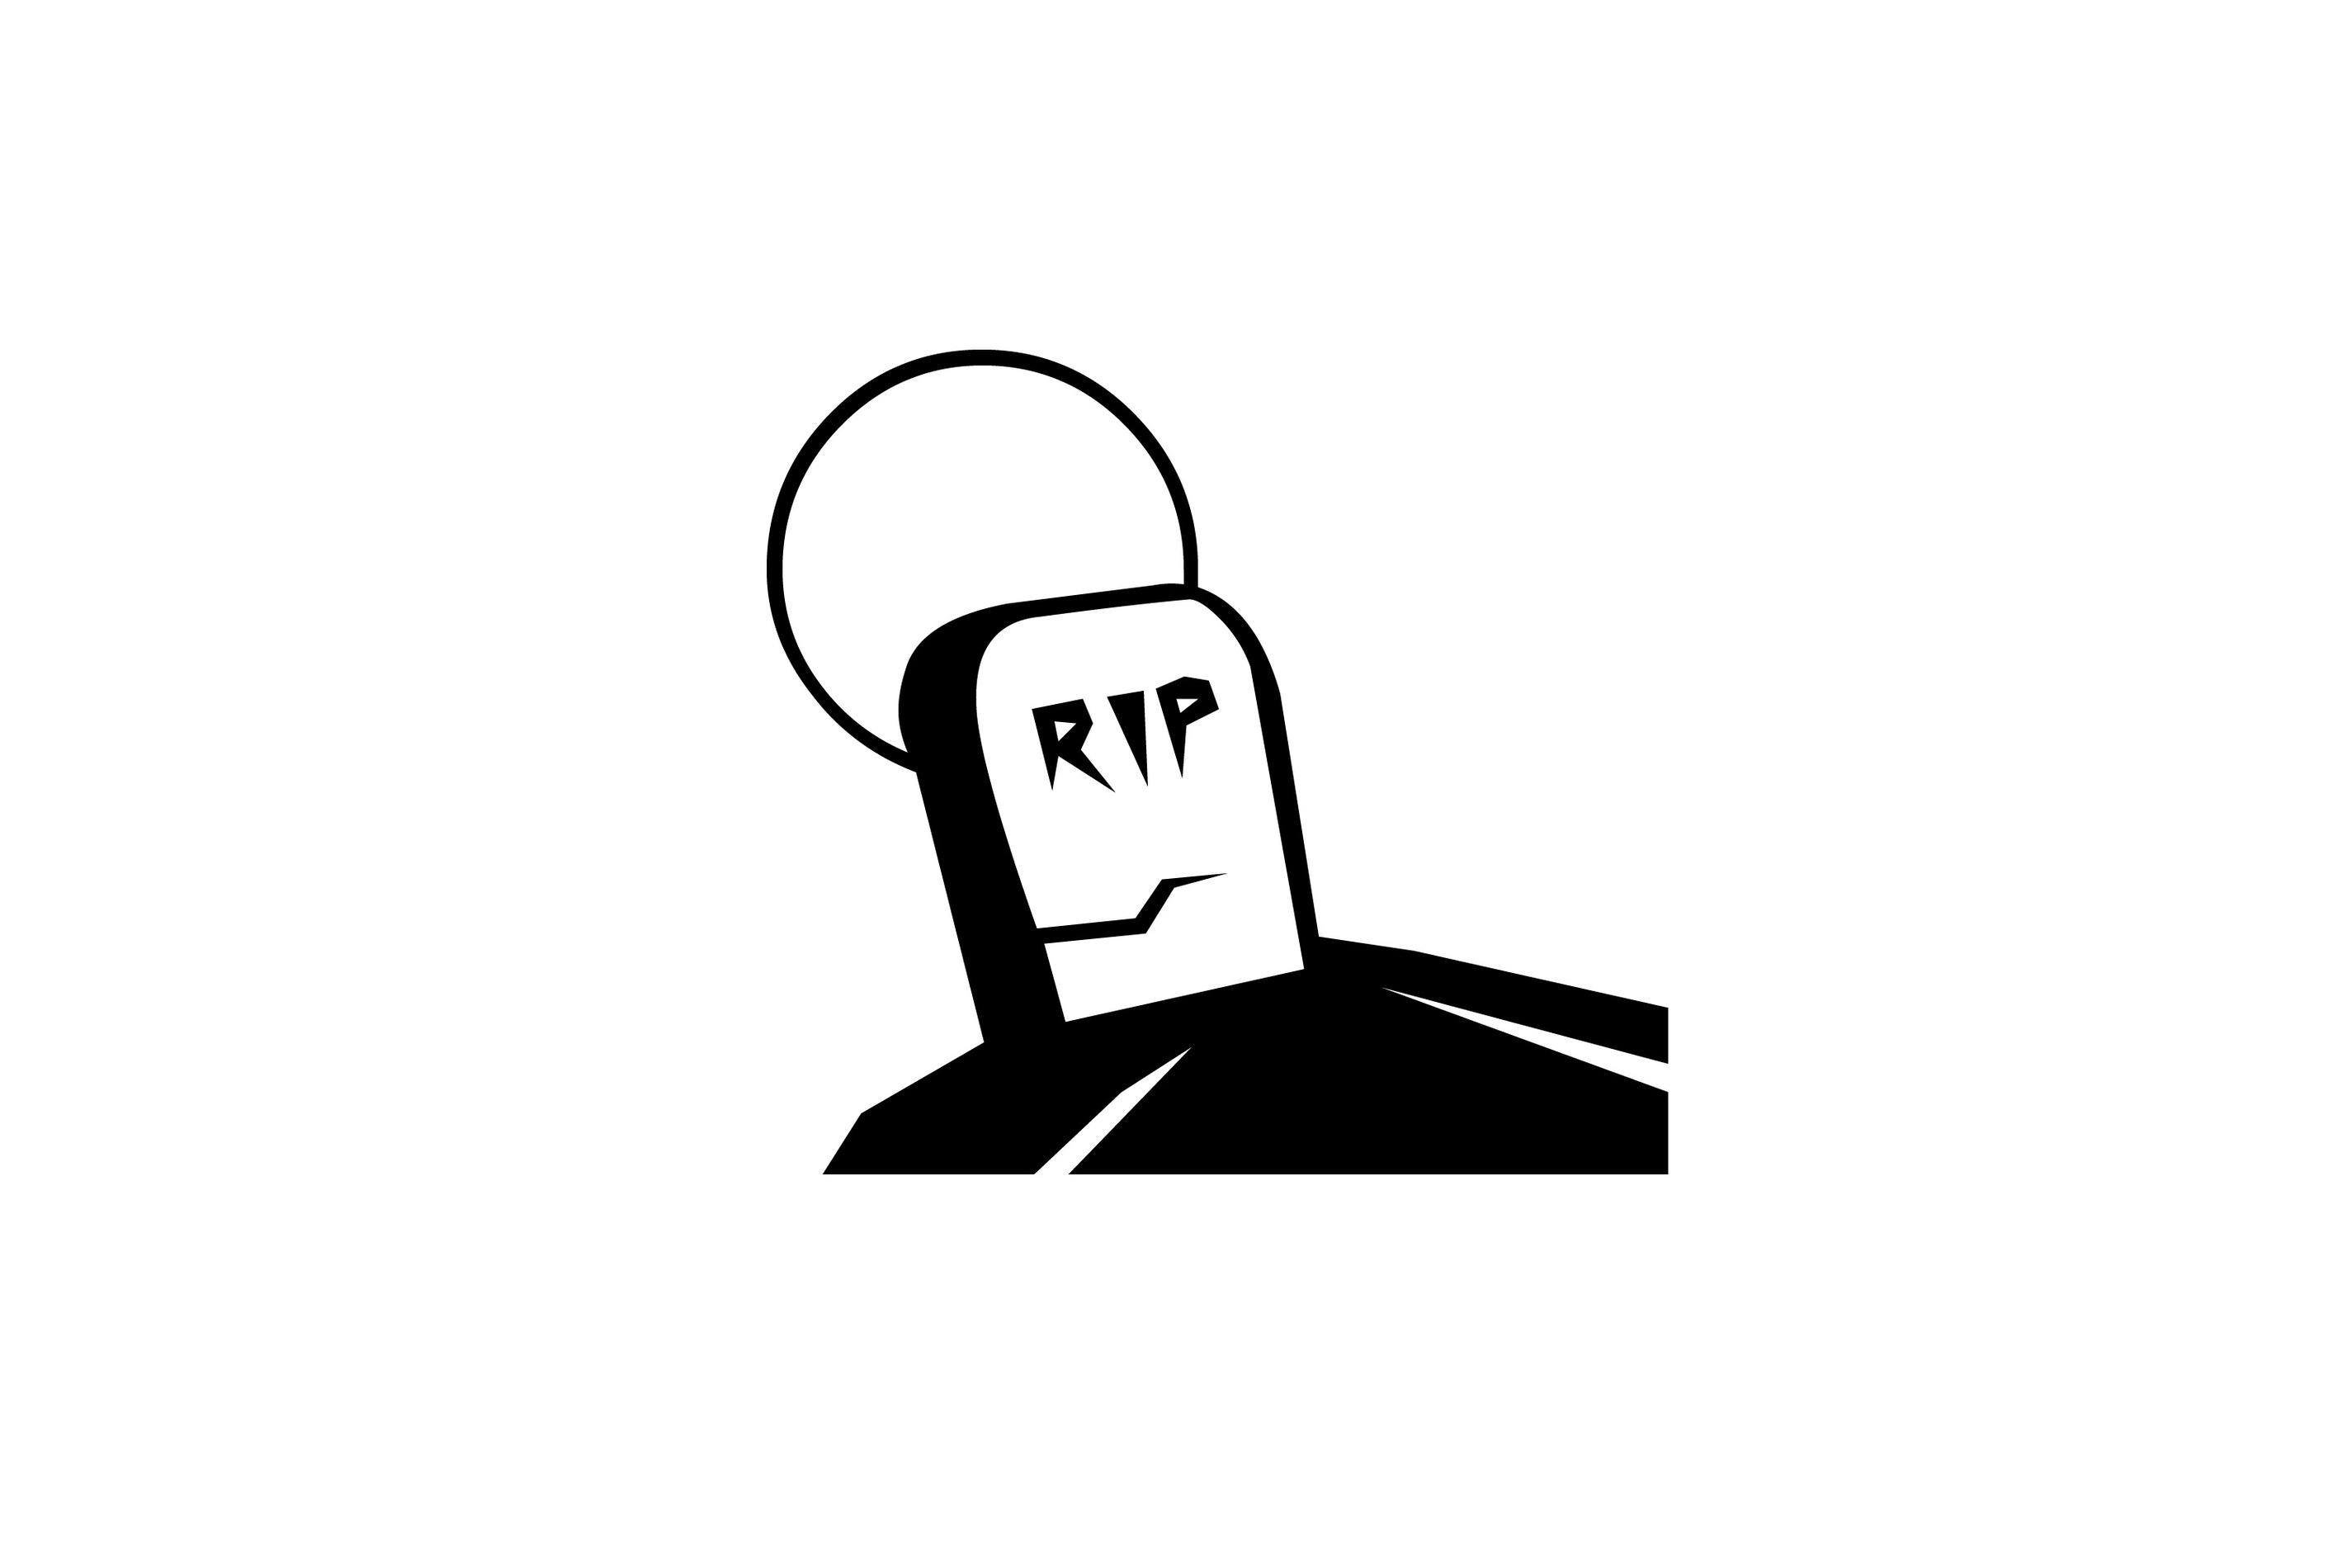 2850x1900 Rip Tombstone Clipart Free To Use Clip Art Resource